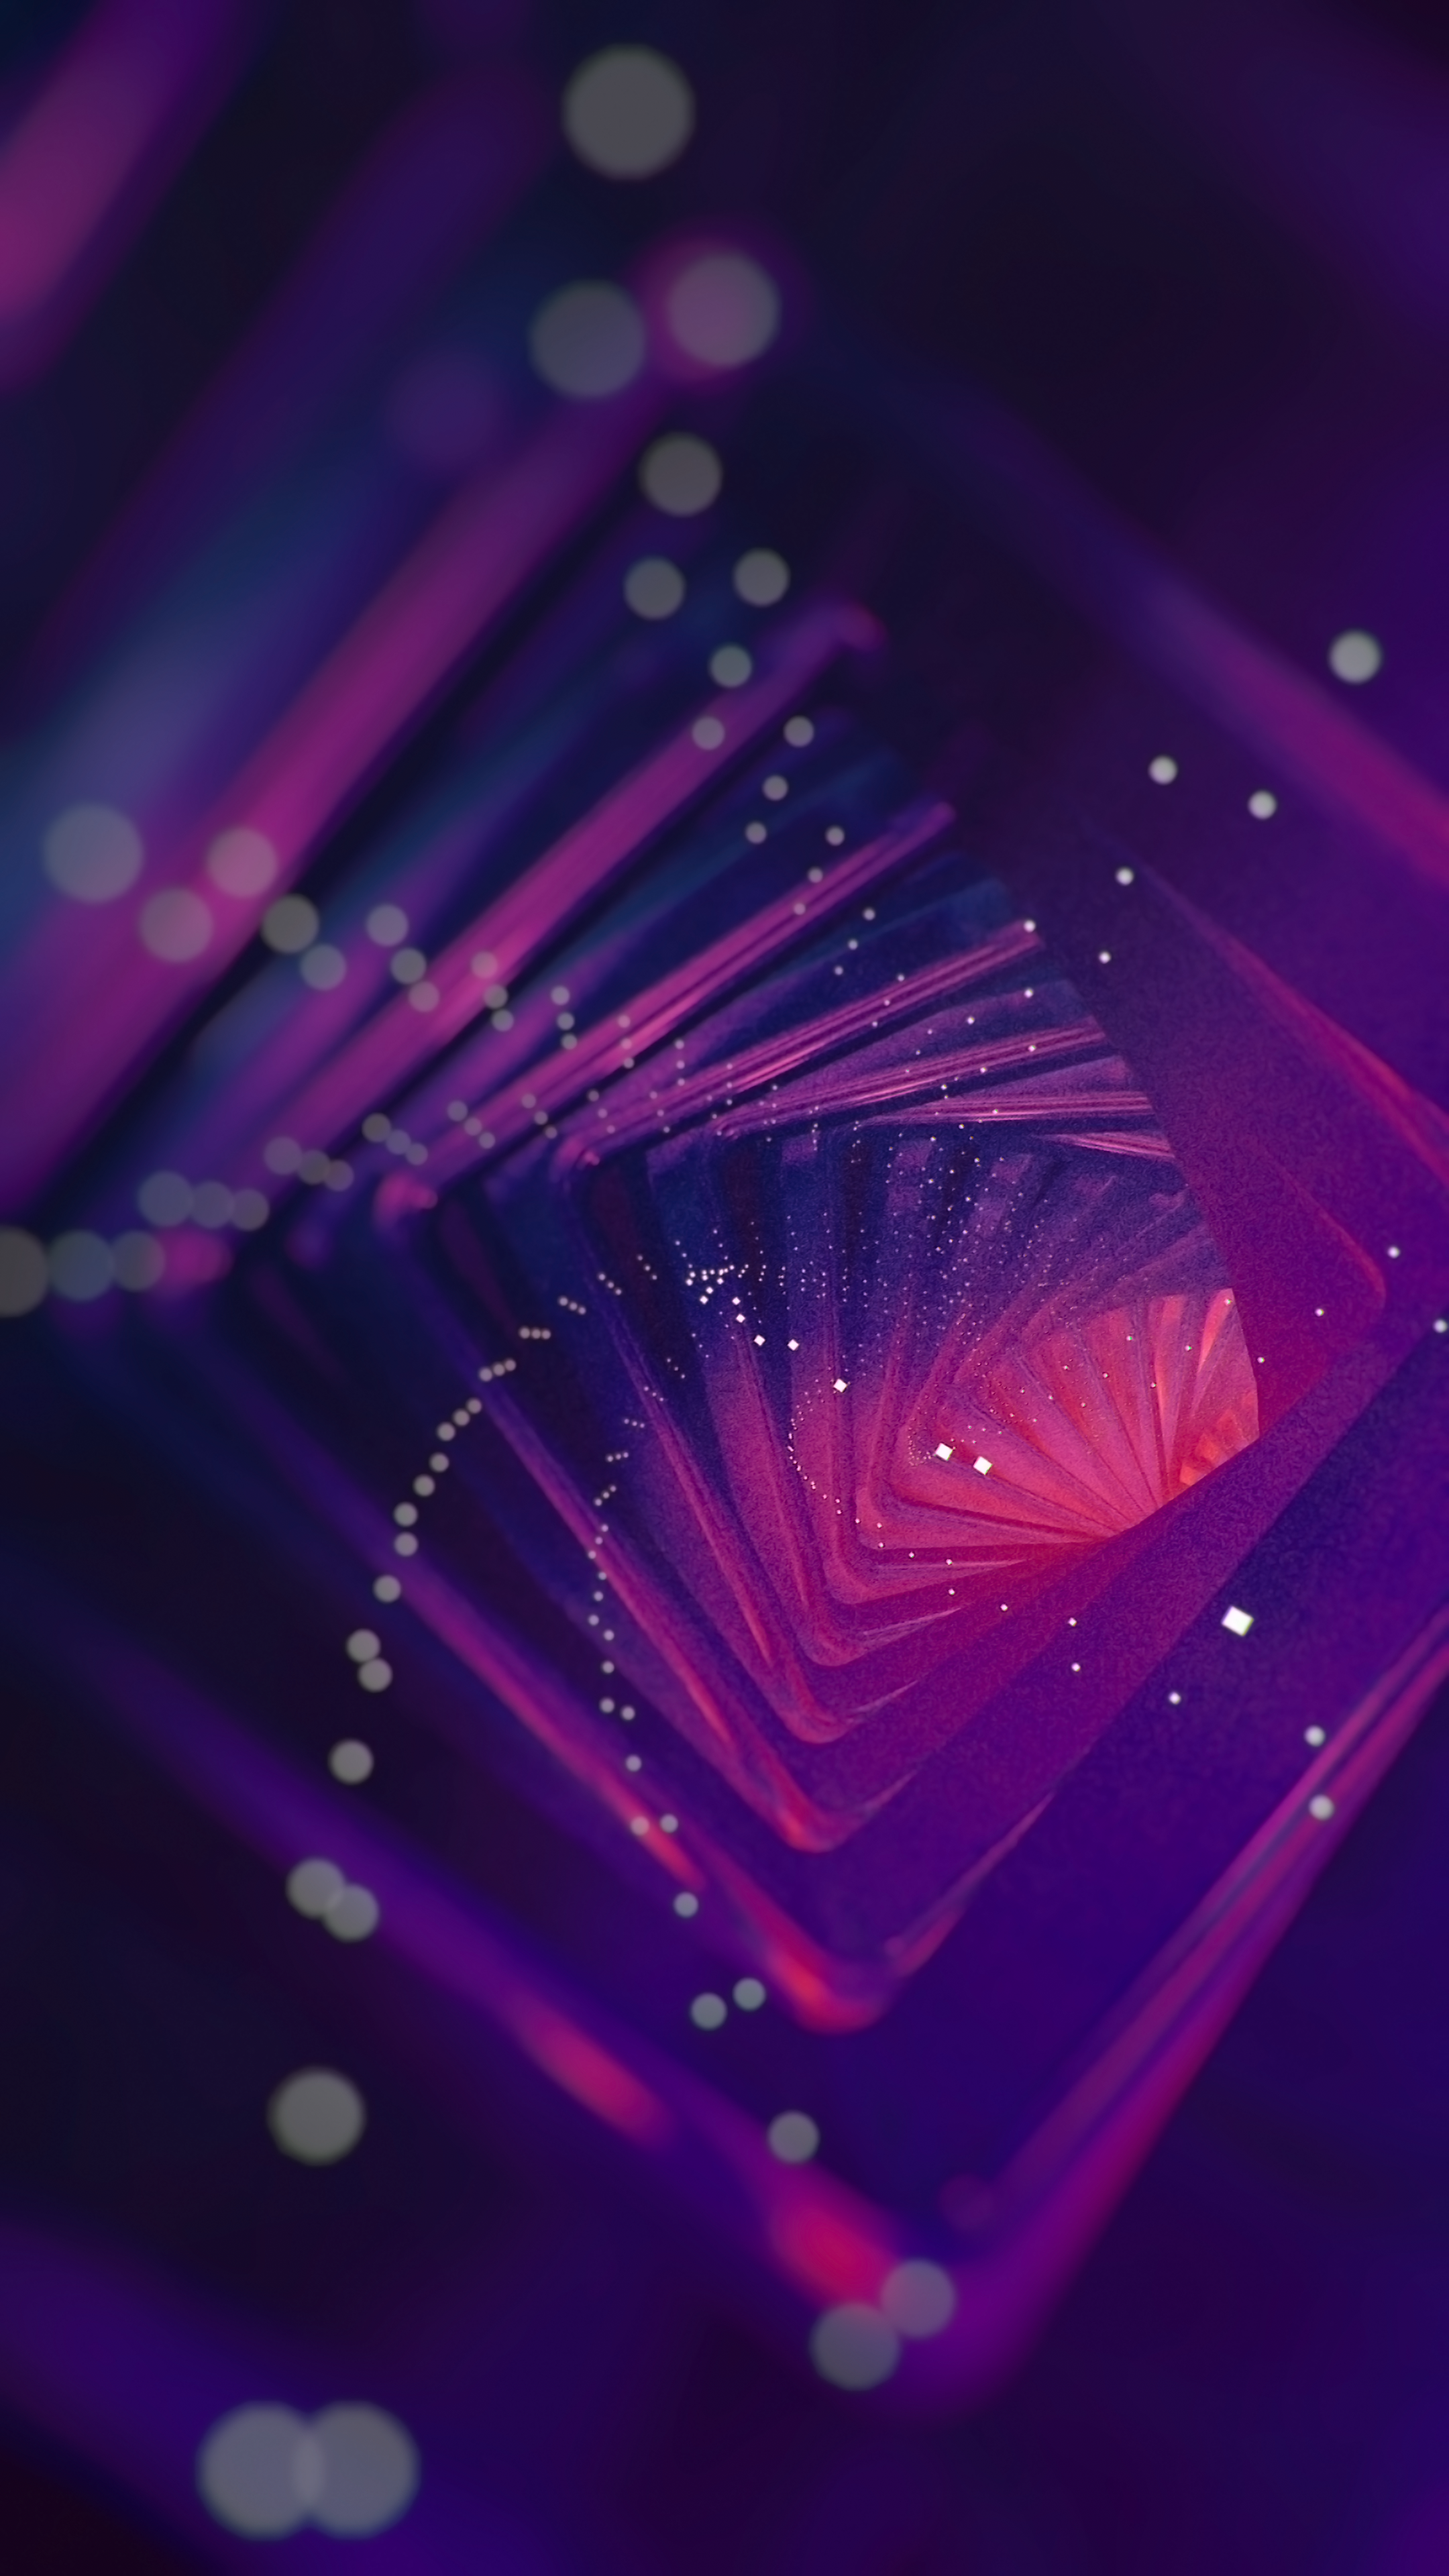 Wallpapers from The Verge - The Verge